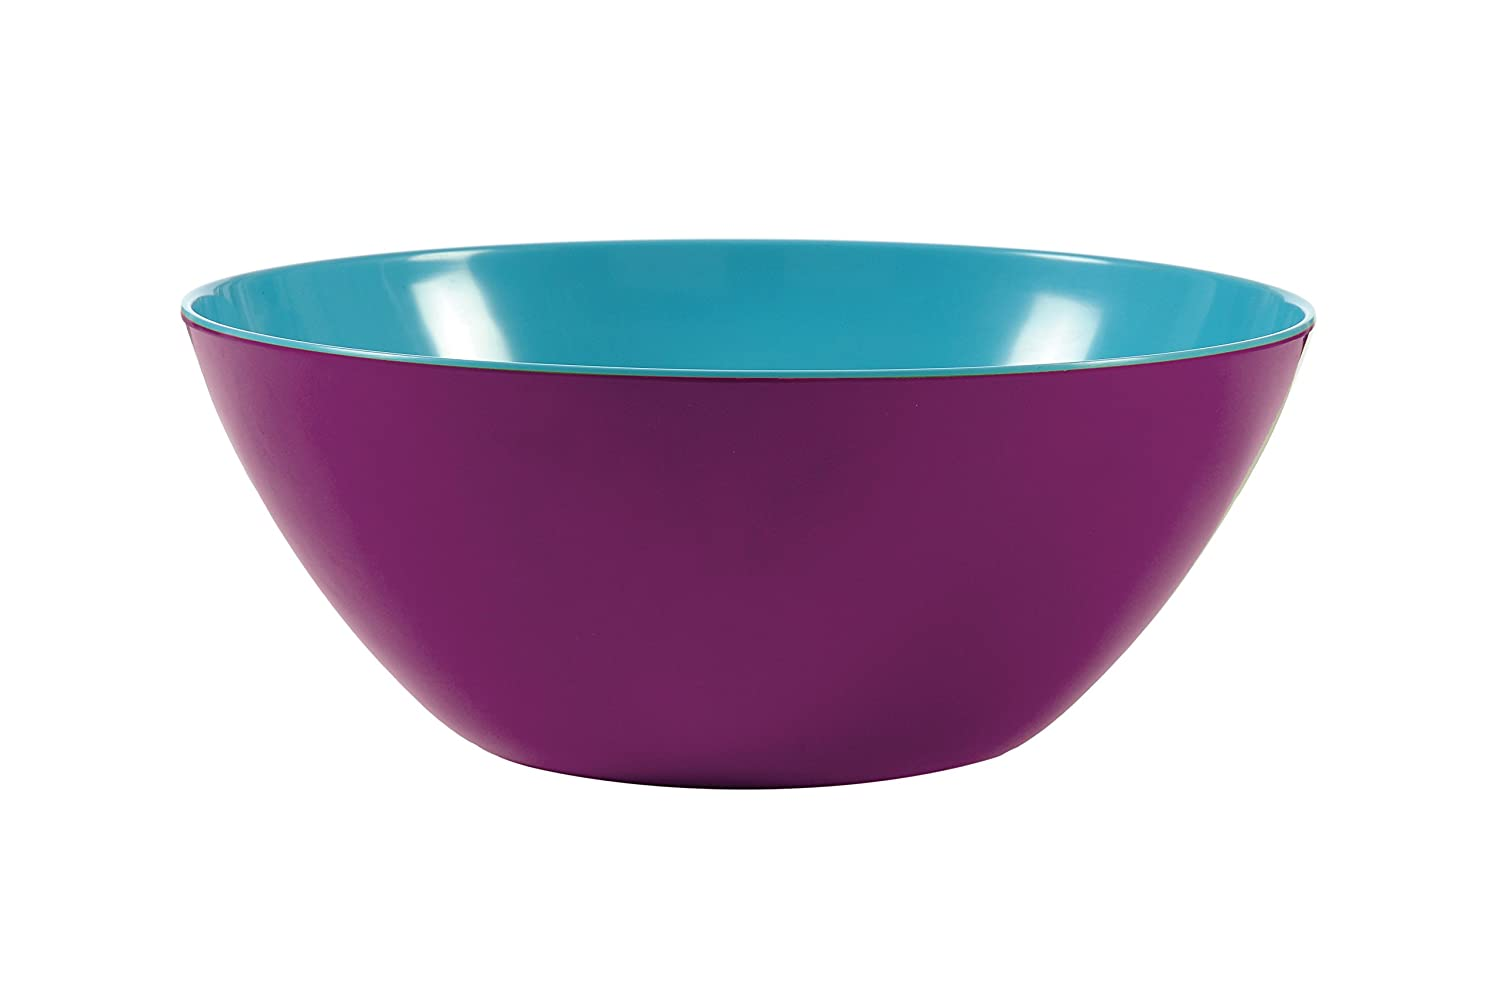 French Bull Melamine Two-Tone Large Bowl, Grape and Turquoise 72342